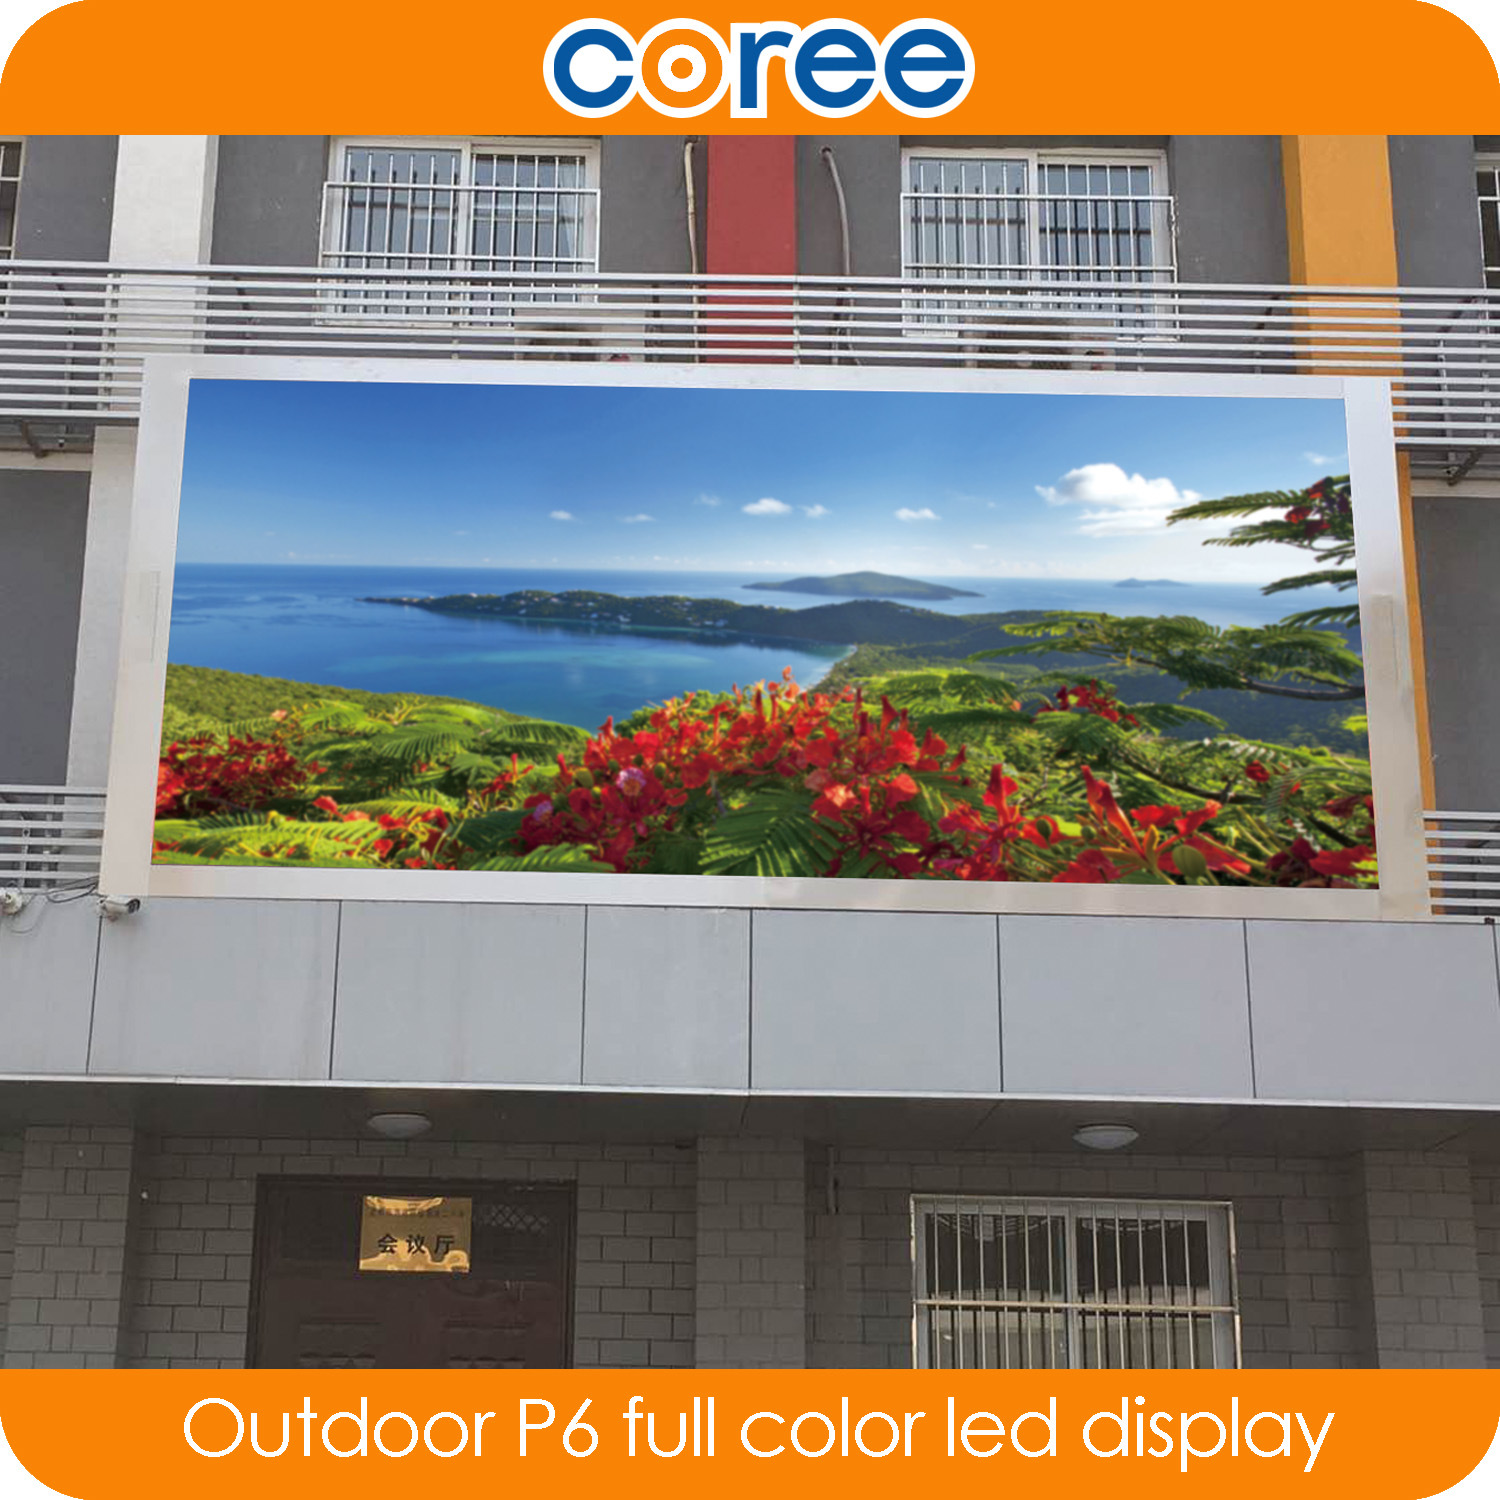 Outdoor High Definition Hight Brightness P6 Full Color LED Display